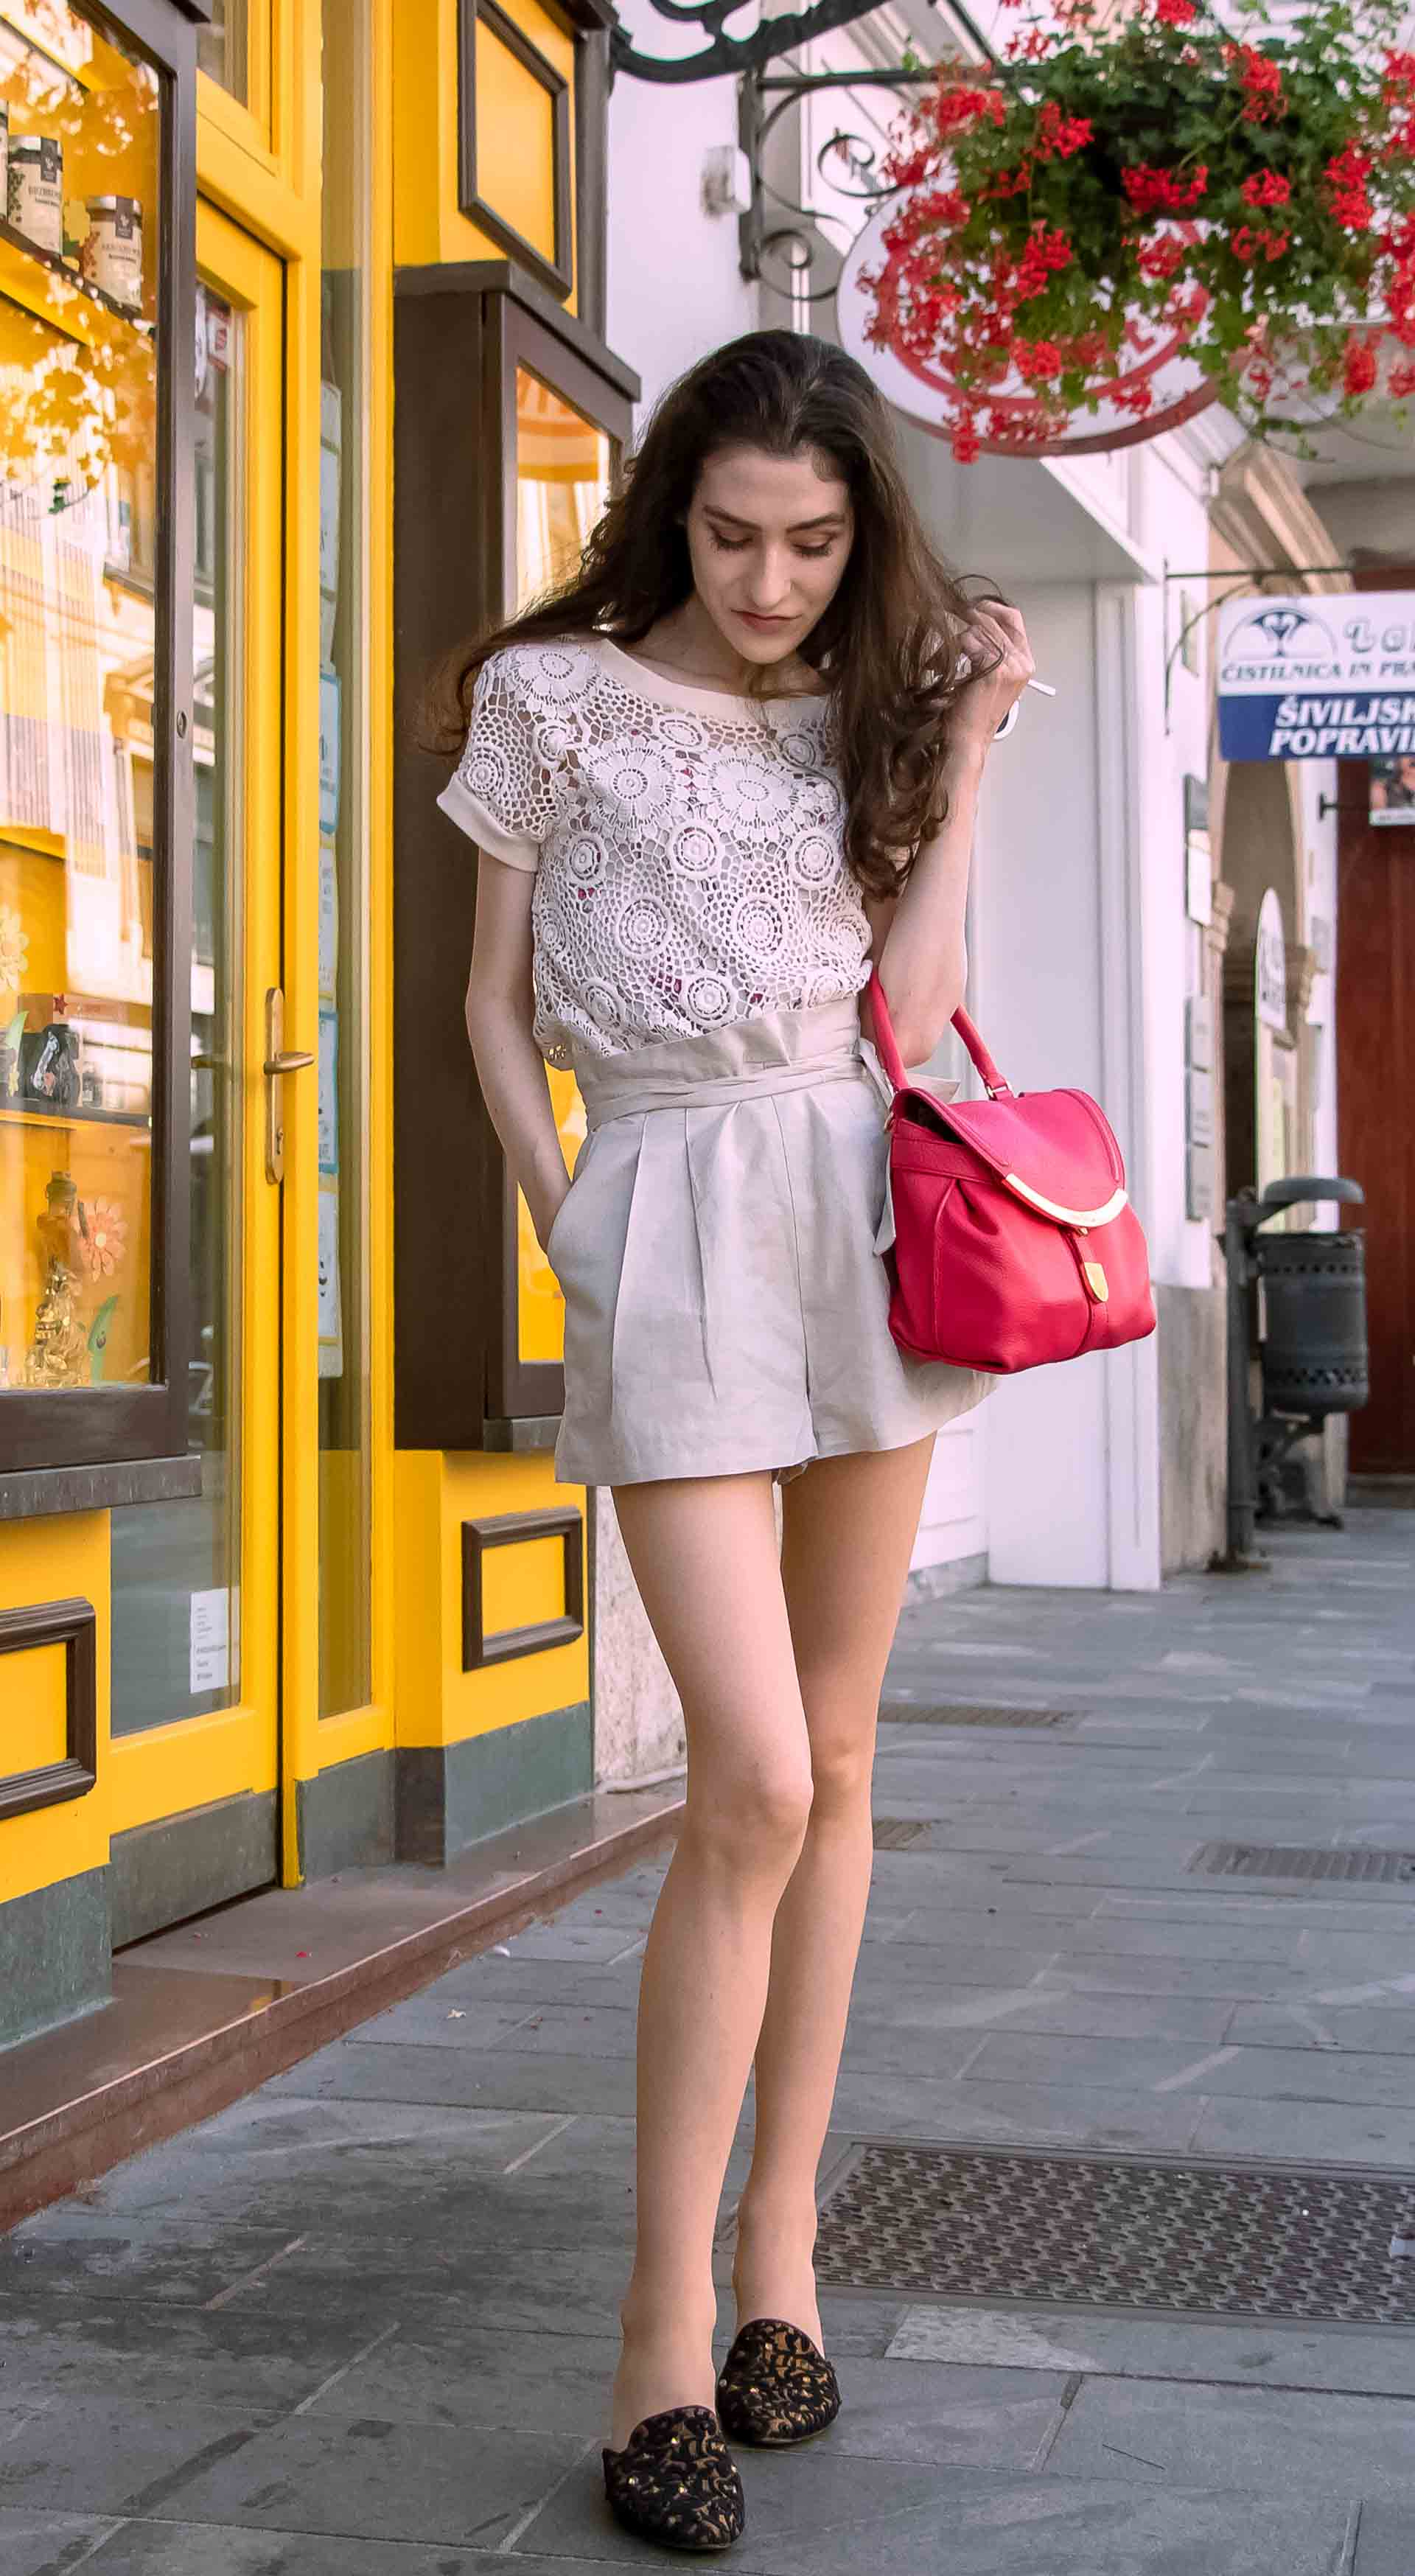 Fashionista wearing beige outfit on the street